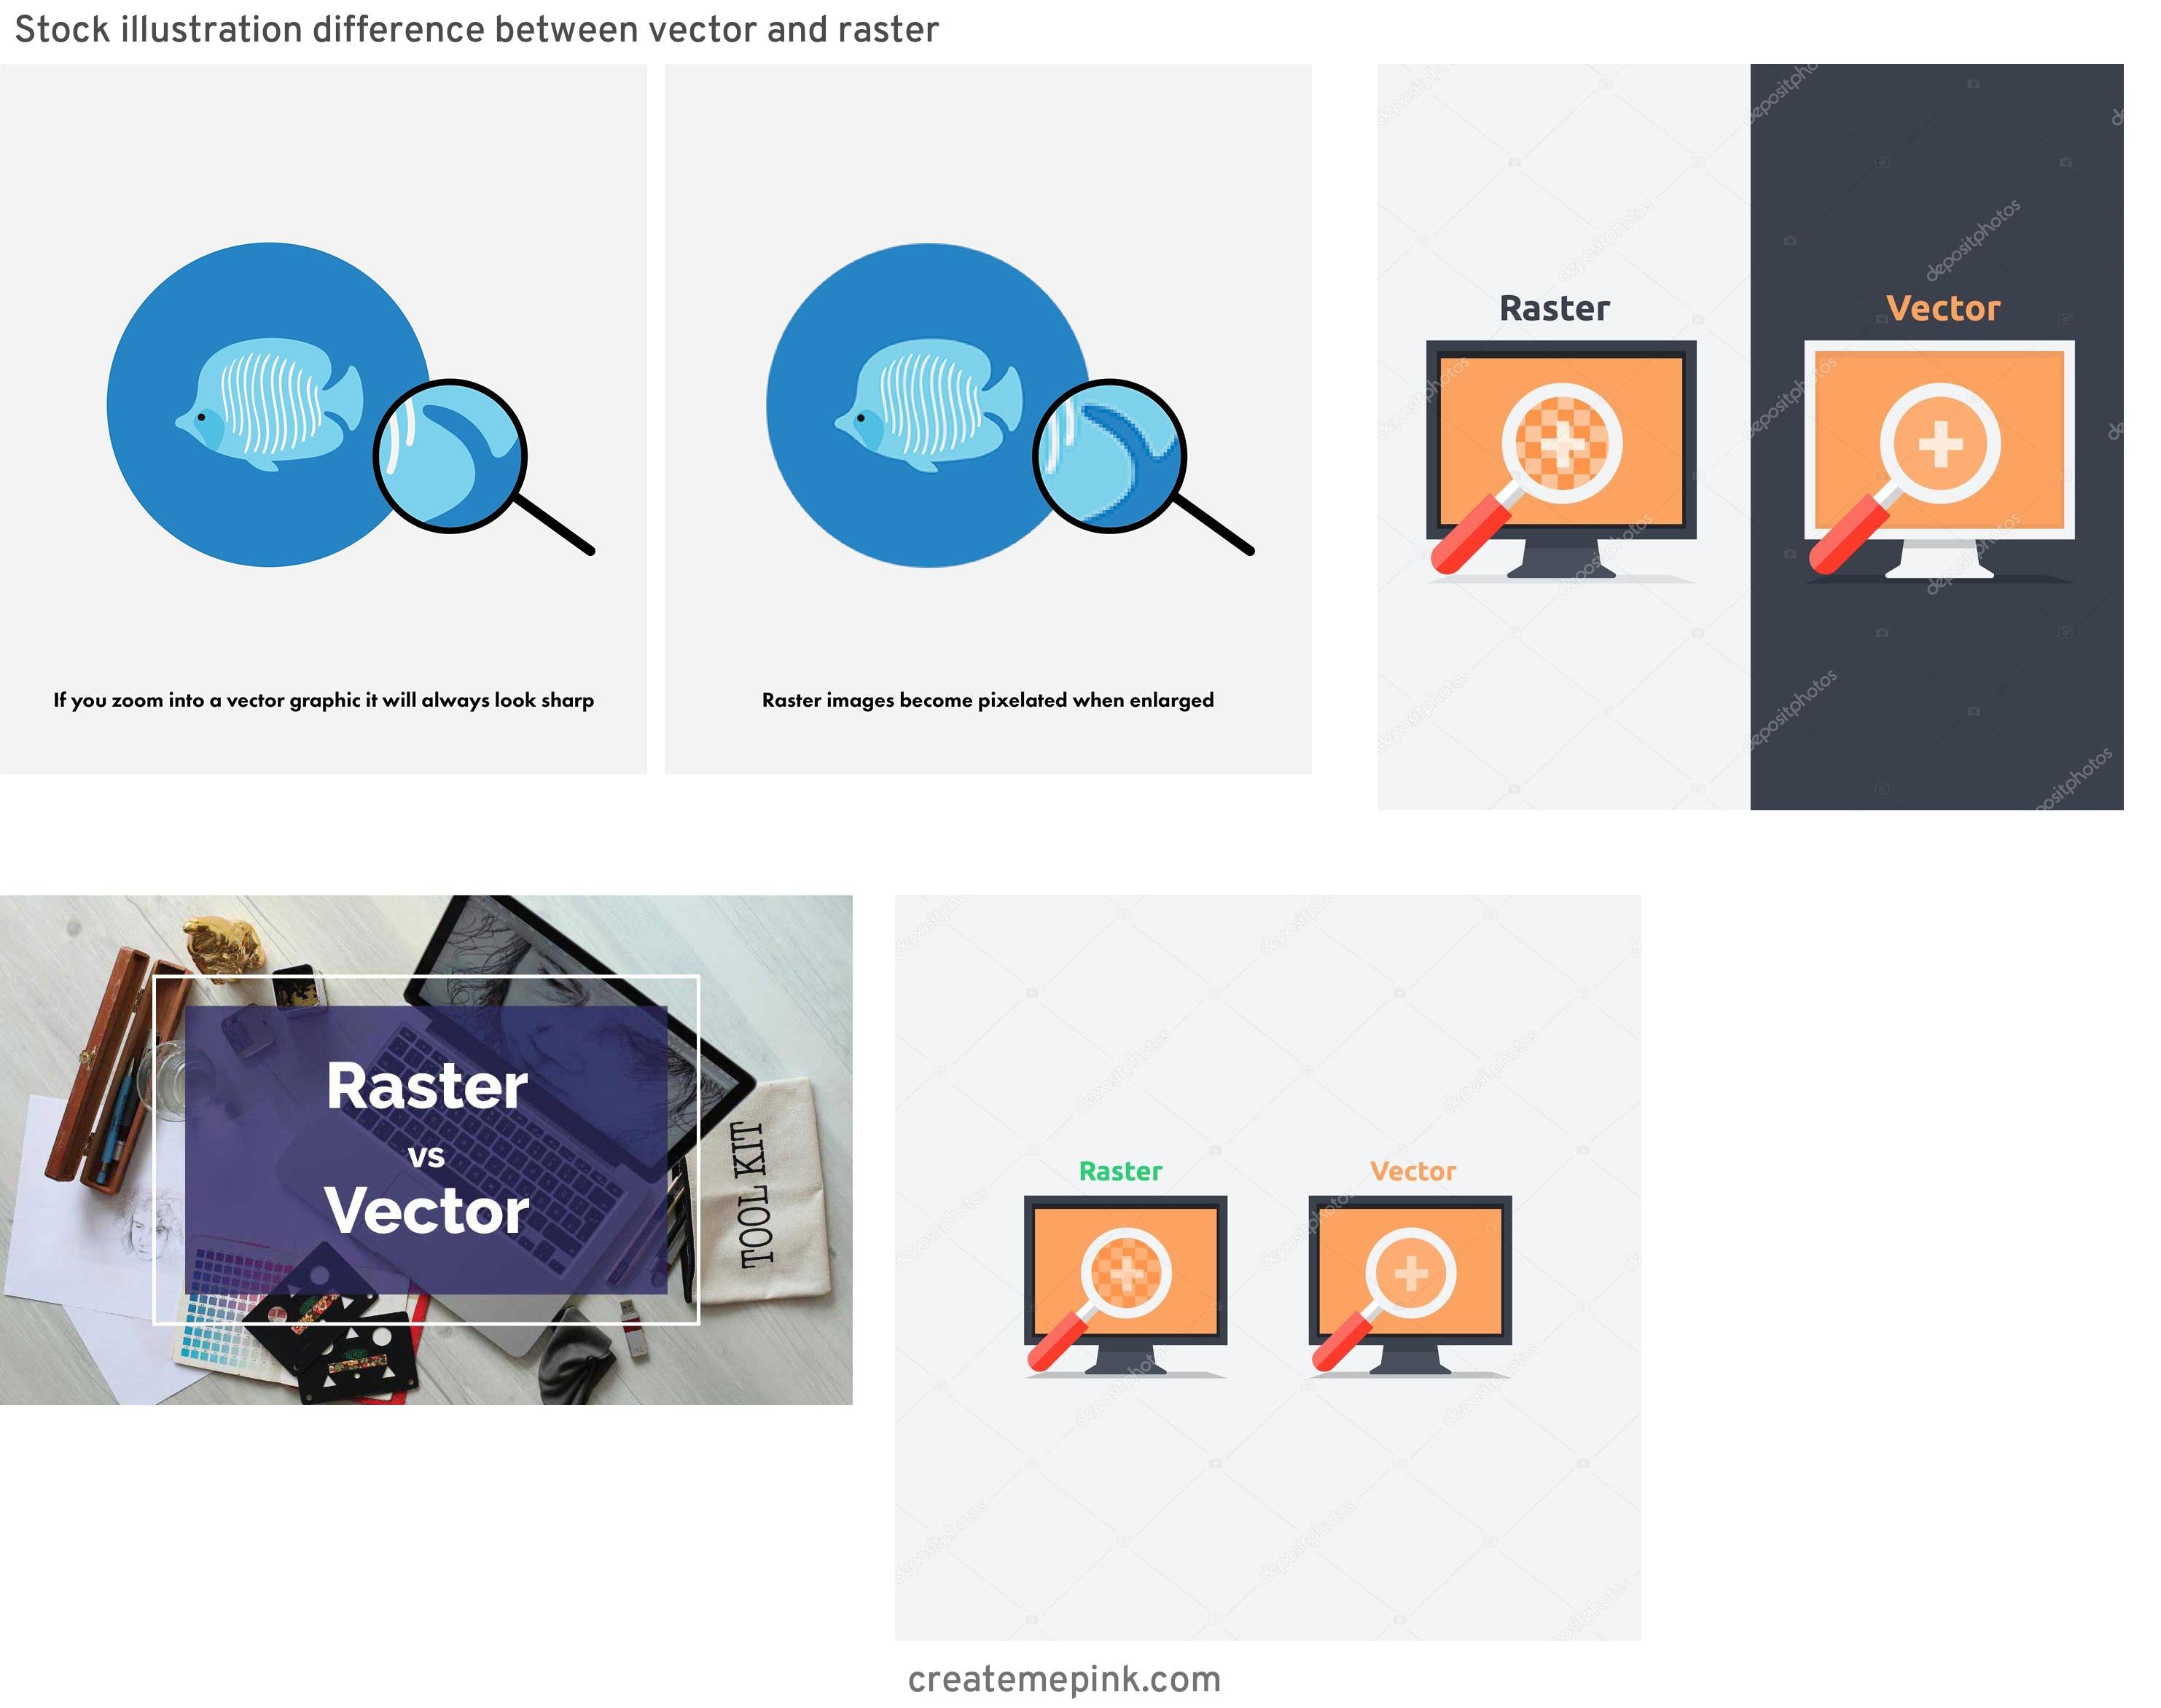 Difference Between Raster And Vector: Stock Illustration Difference Between Vector And Raster